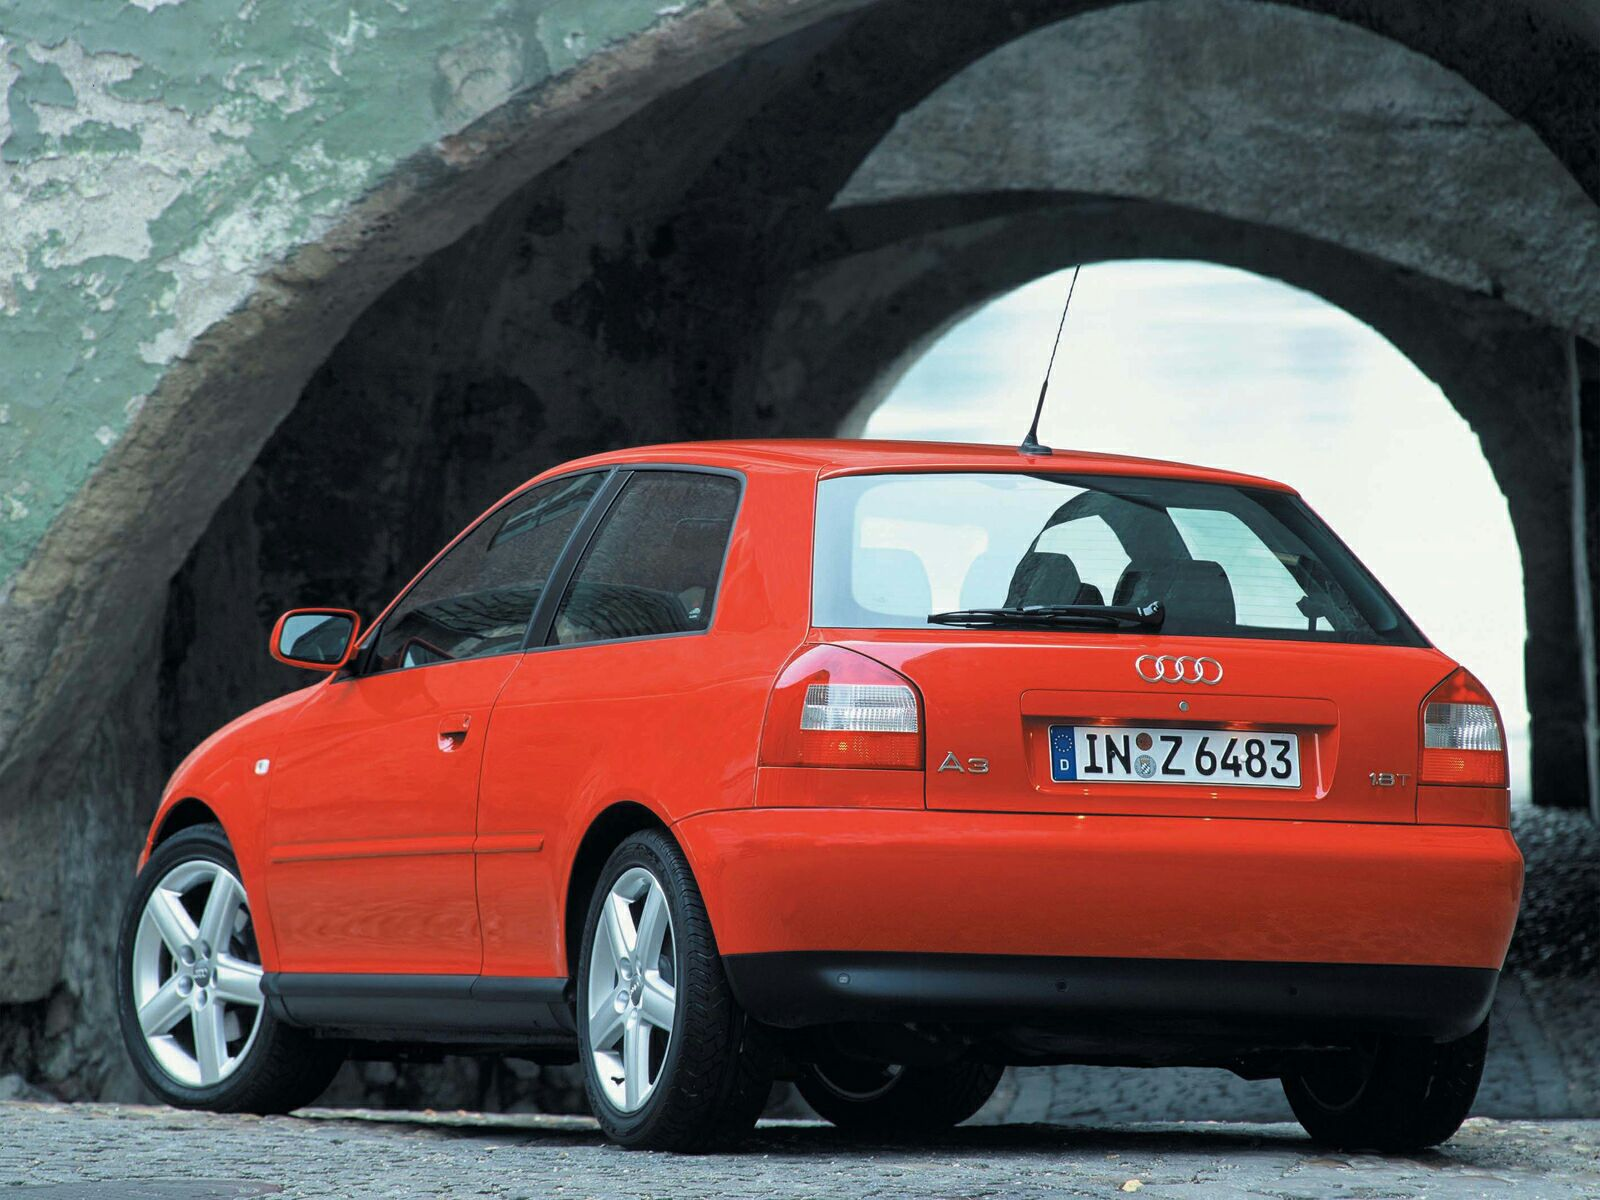 Audi A3 I (8L) 1996 - 2000 Hatchback 3 door #3